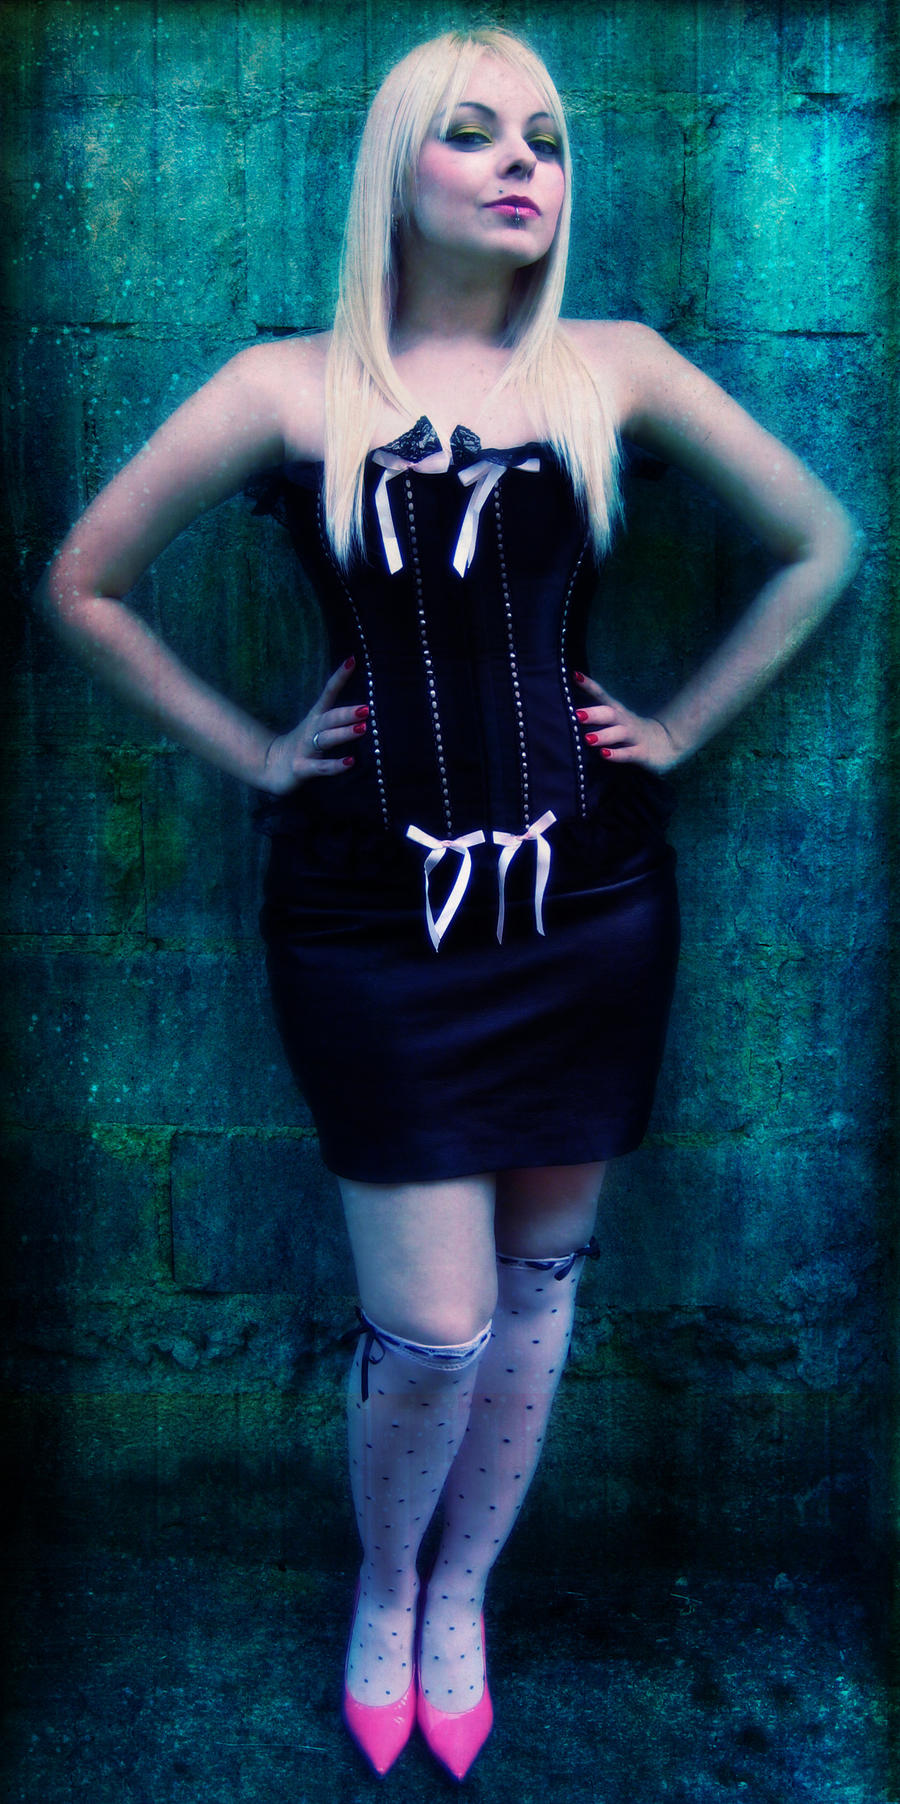 Cherry Blond Girl Corset Edit by cherrybomb-81